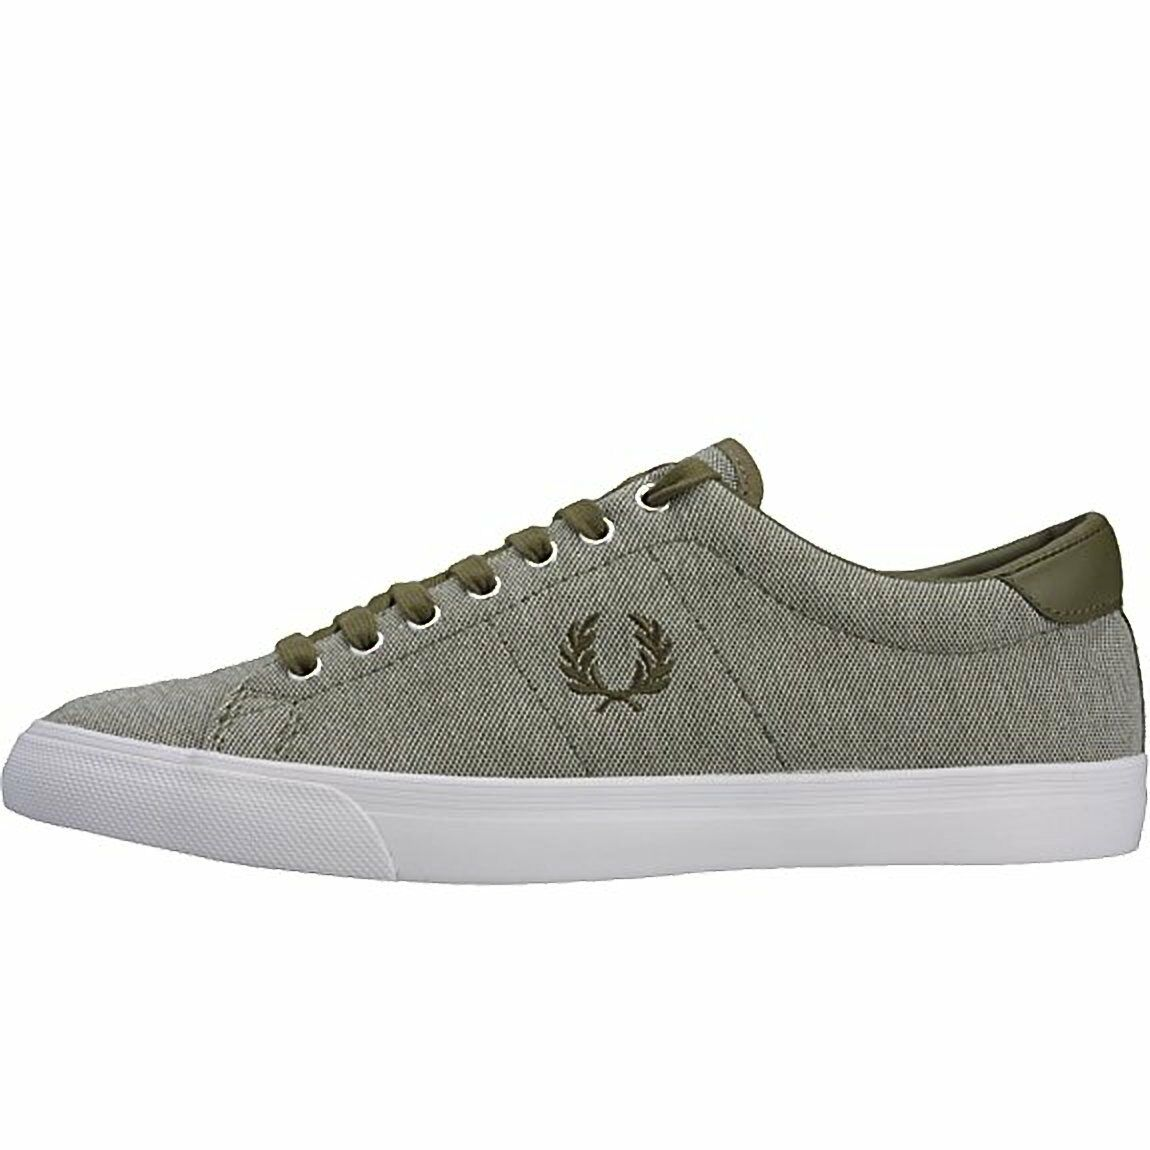 Frot PERRY mens trainers new Turnschuhe canvas lace up schuhe  6.5  8  9.5 10 UK